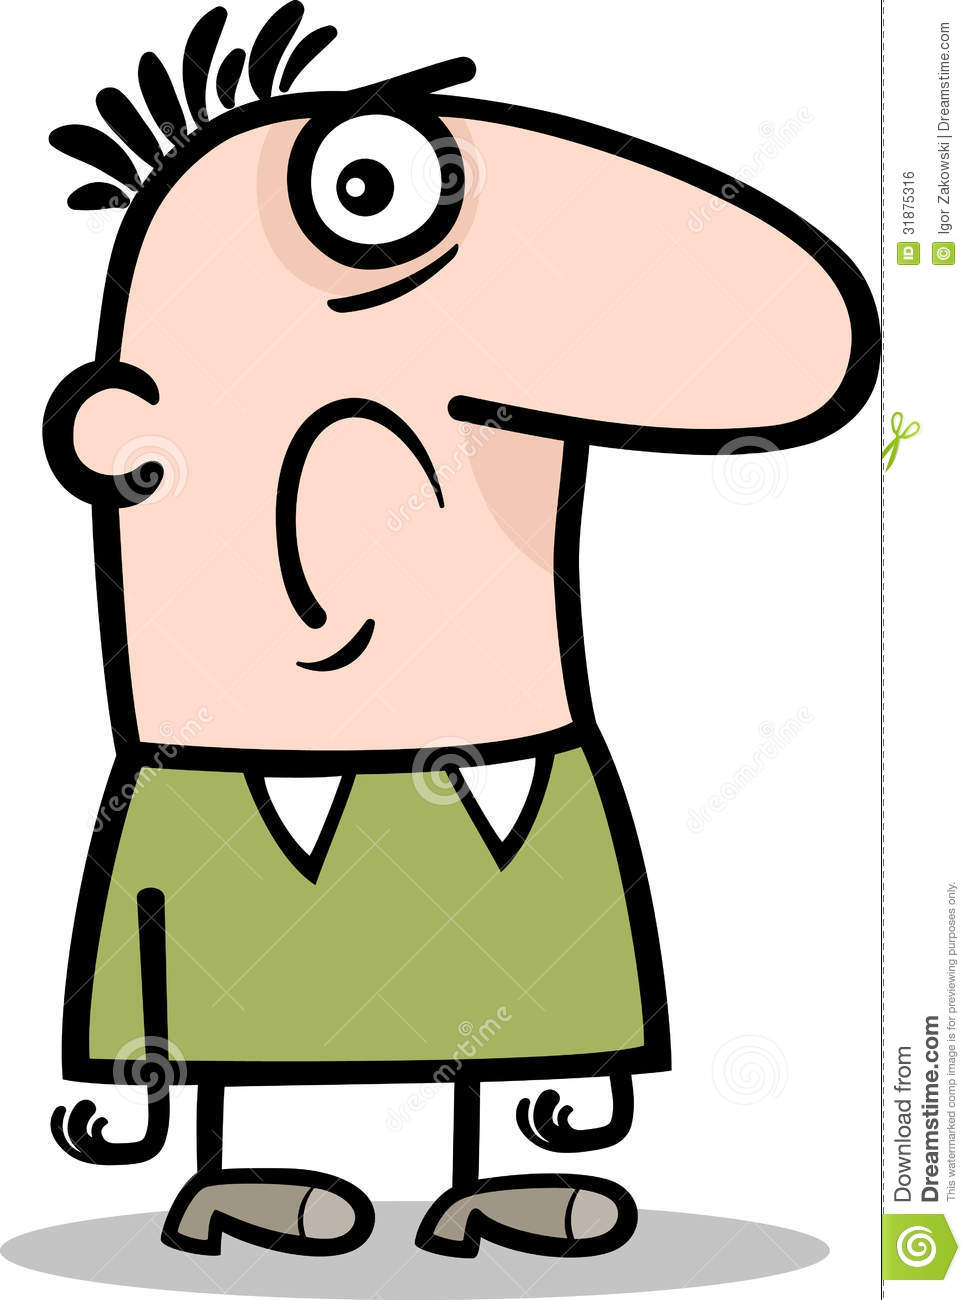 Unhappy People Clipart - Clipart Suggest